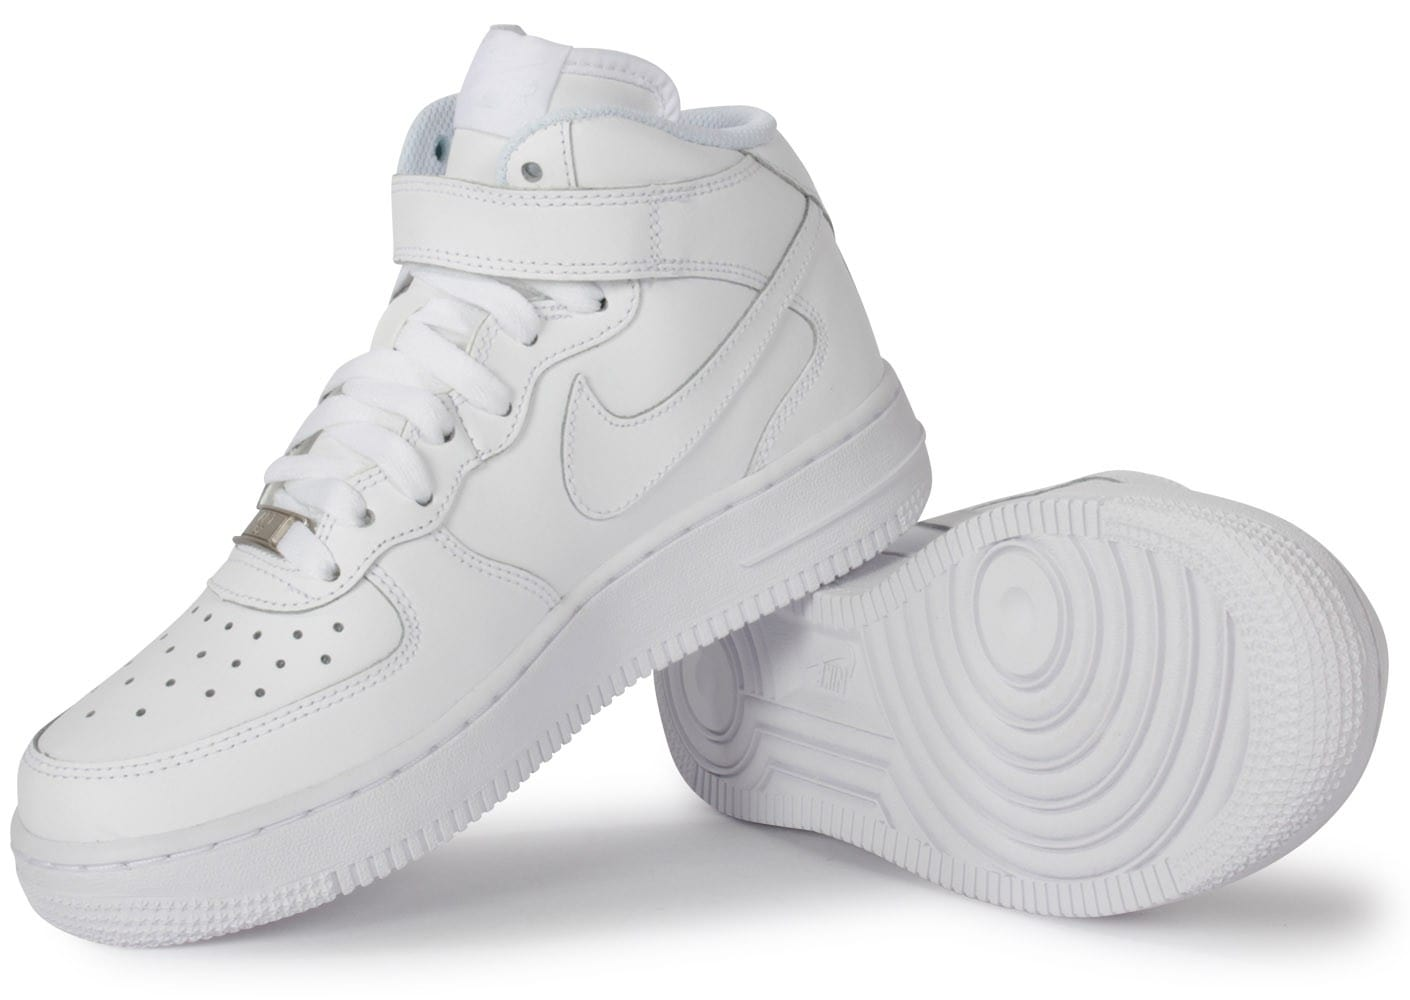 best sneakers 06ed7 00f7b chaussures nike air force vue dessous semelle